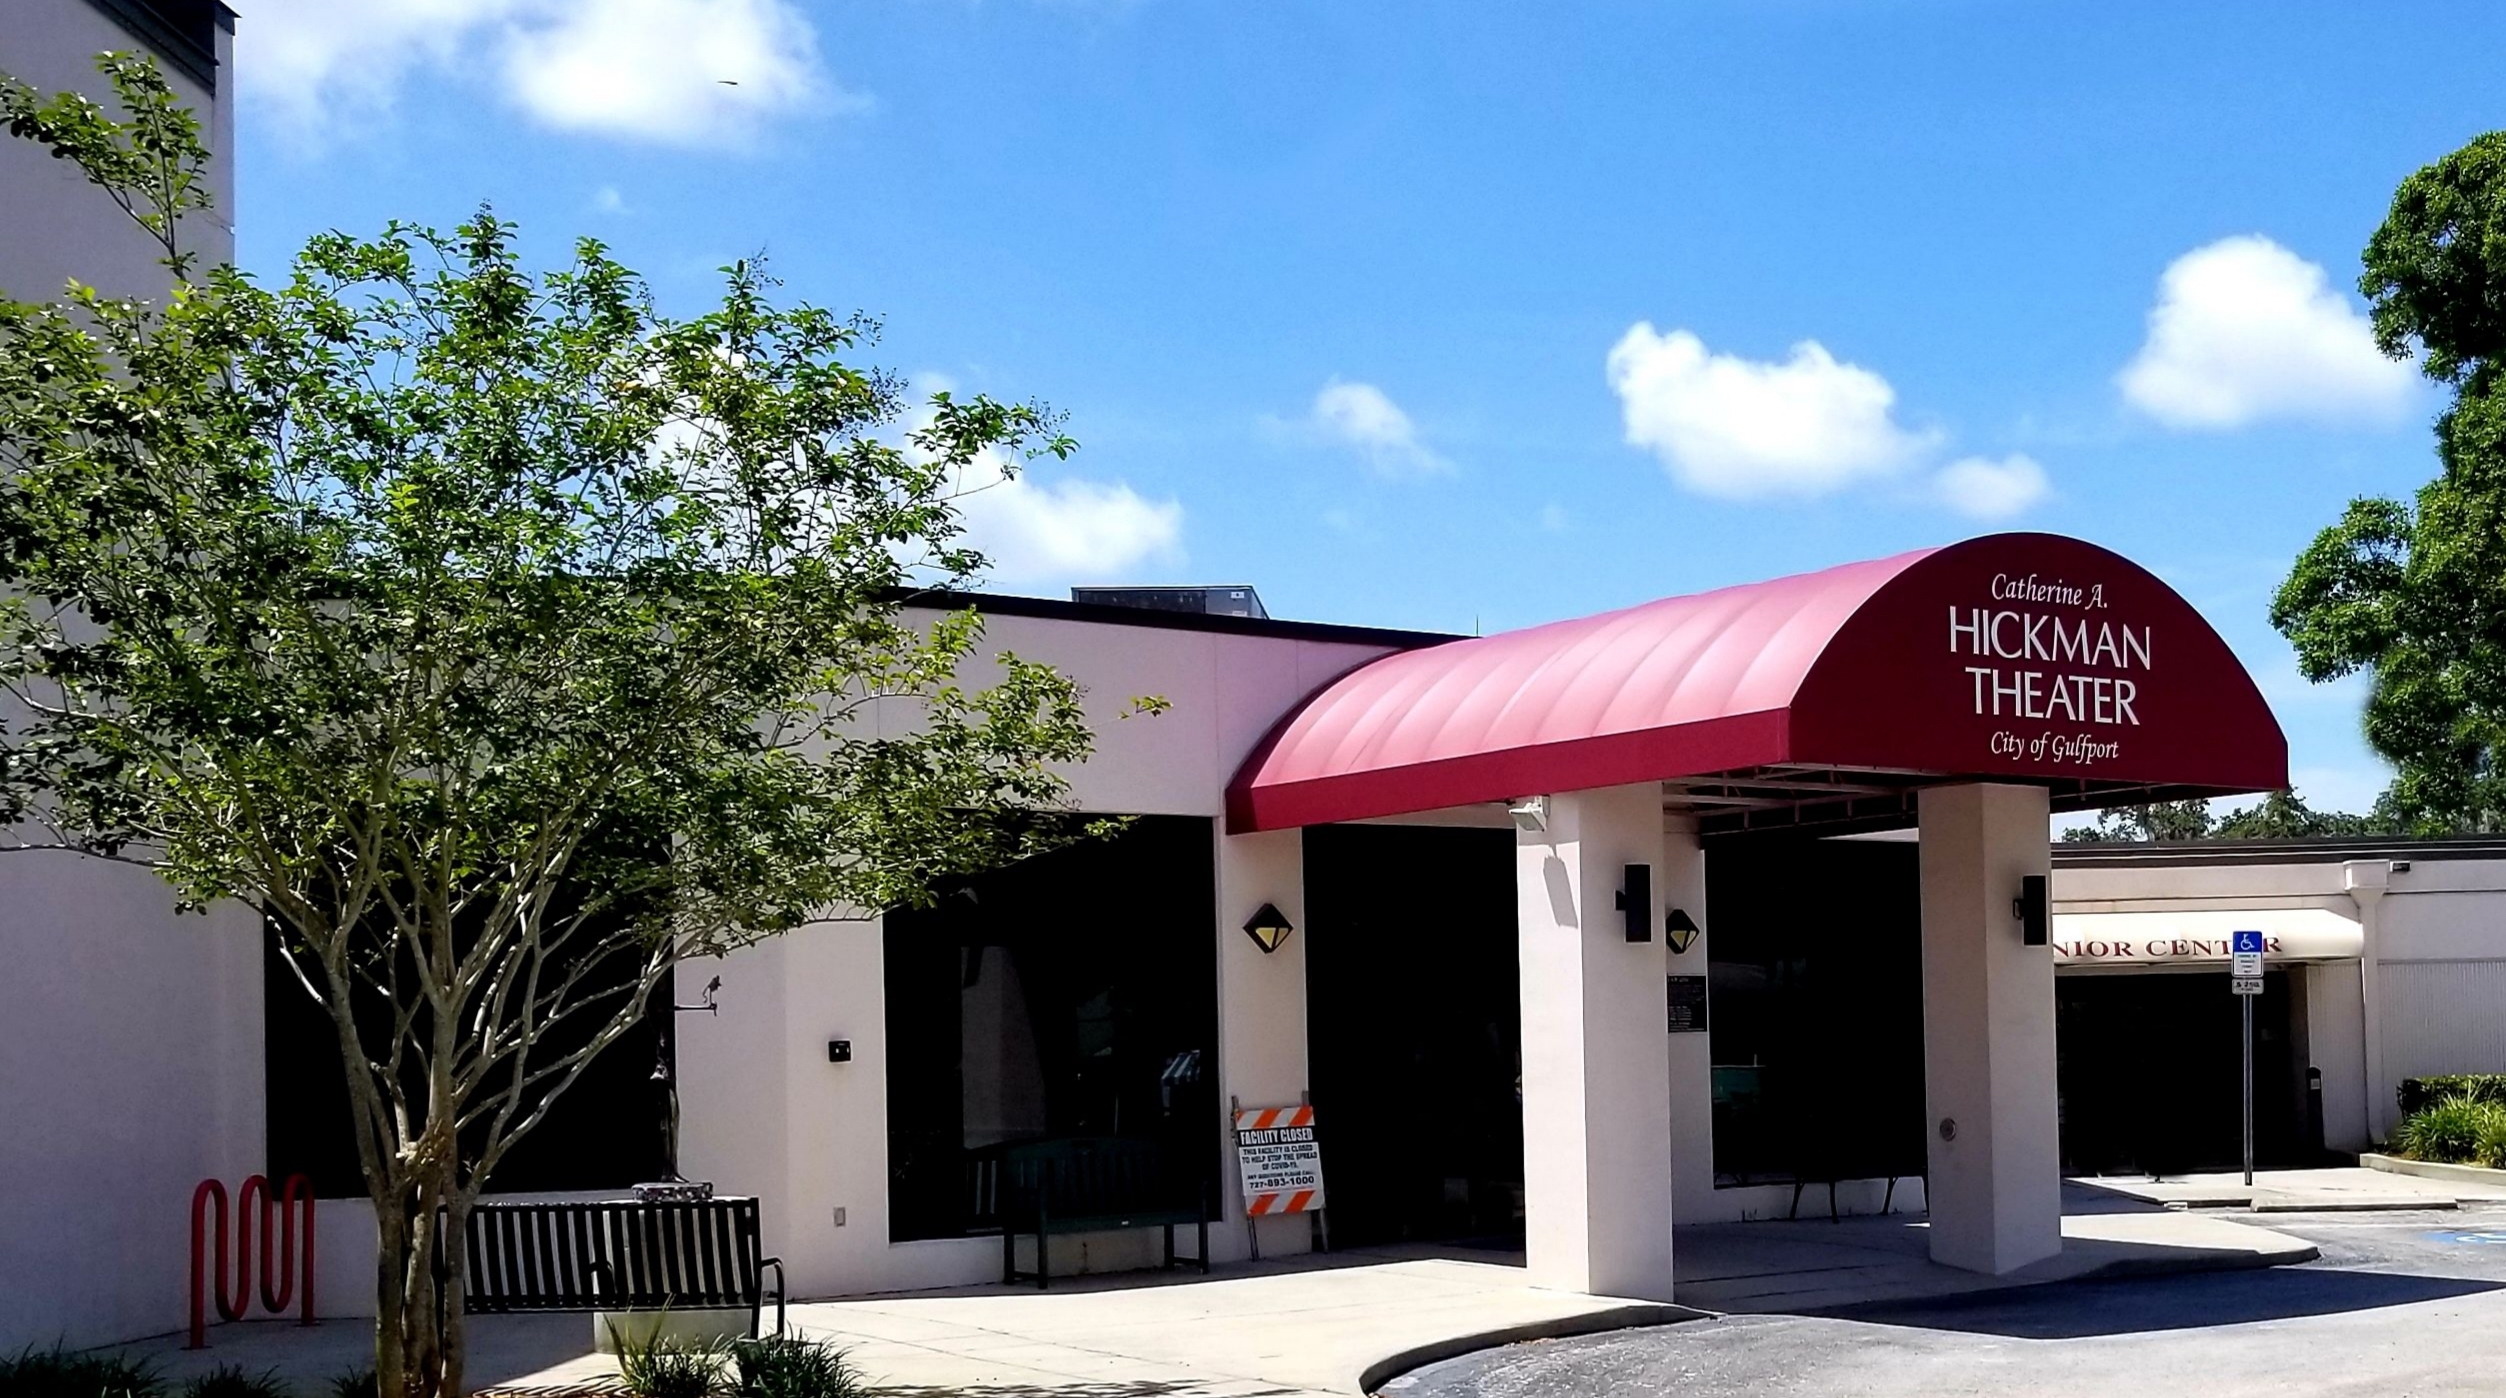 The entrance to the Catherine Hickman Theater in Gulfport Florida with maroon awning and blue sky.